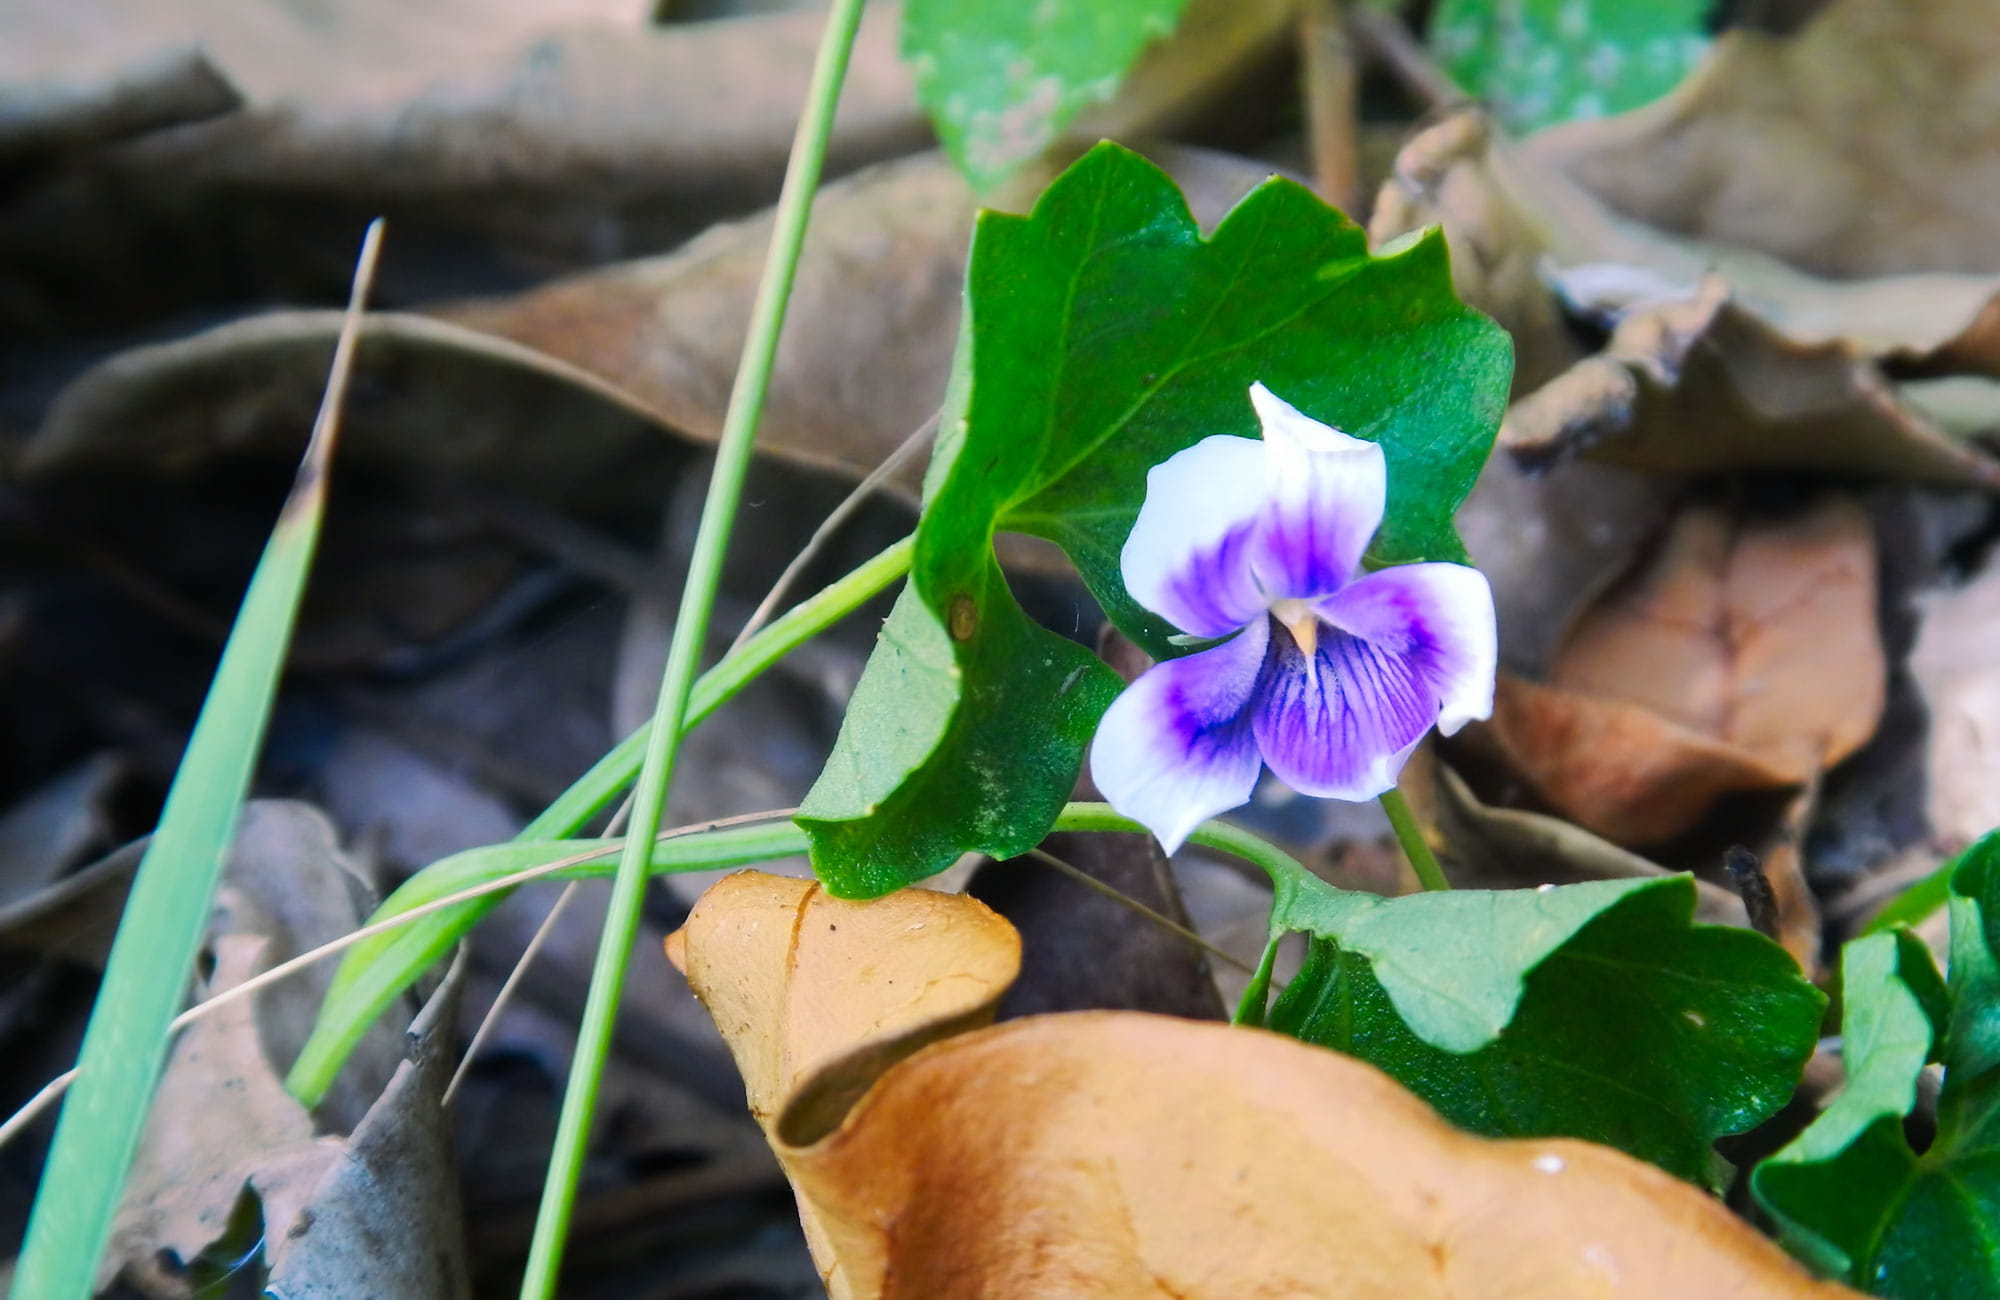 Small delicate purple flower. Photo:Debby McGerty